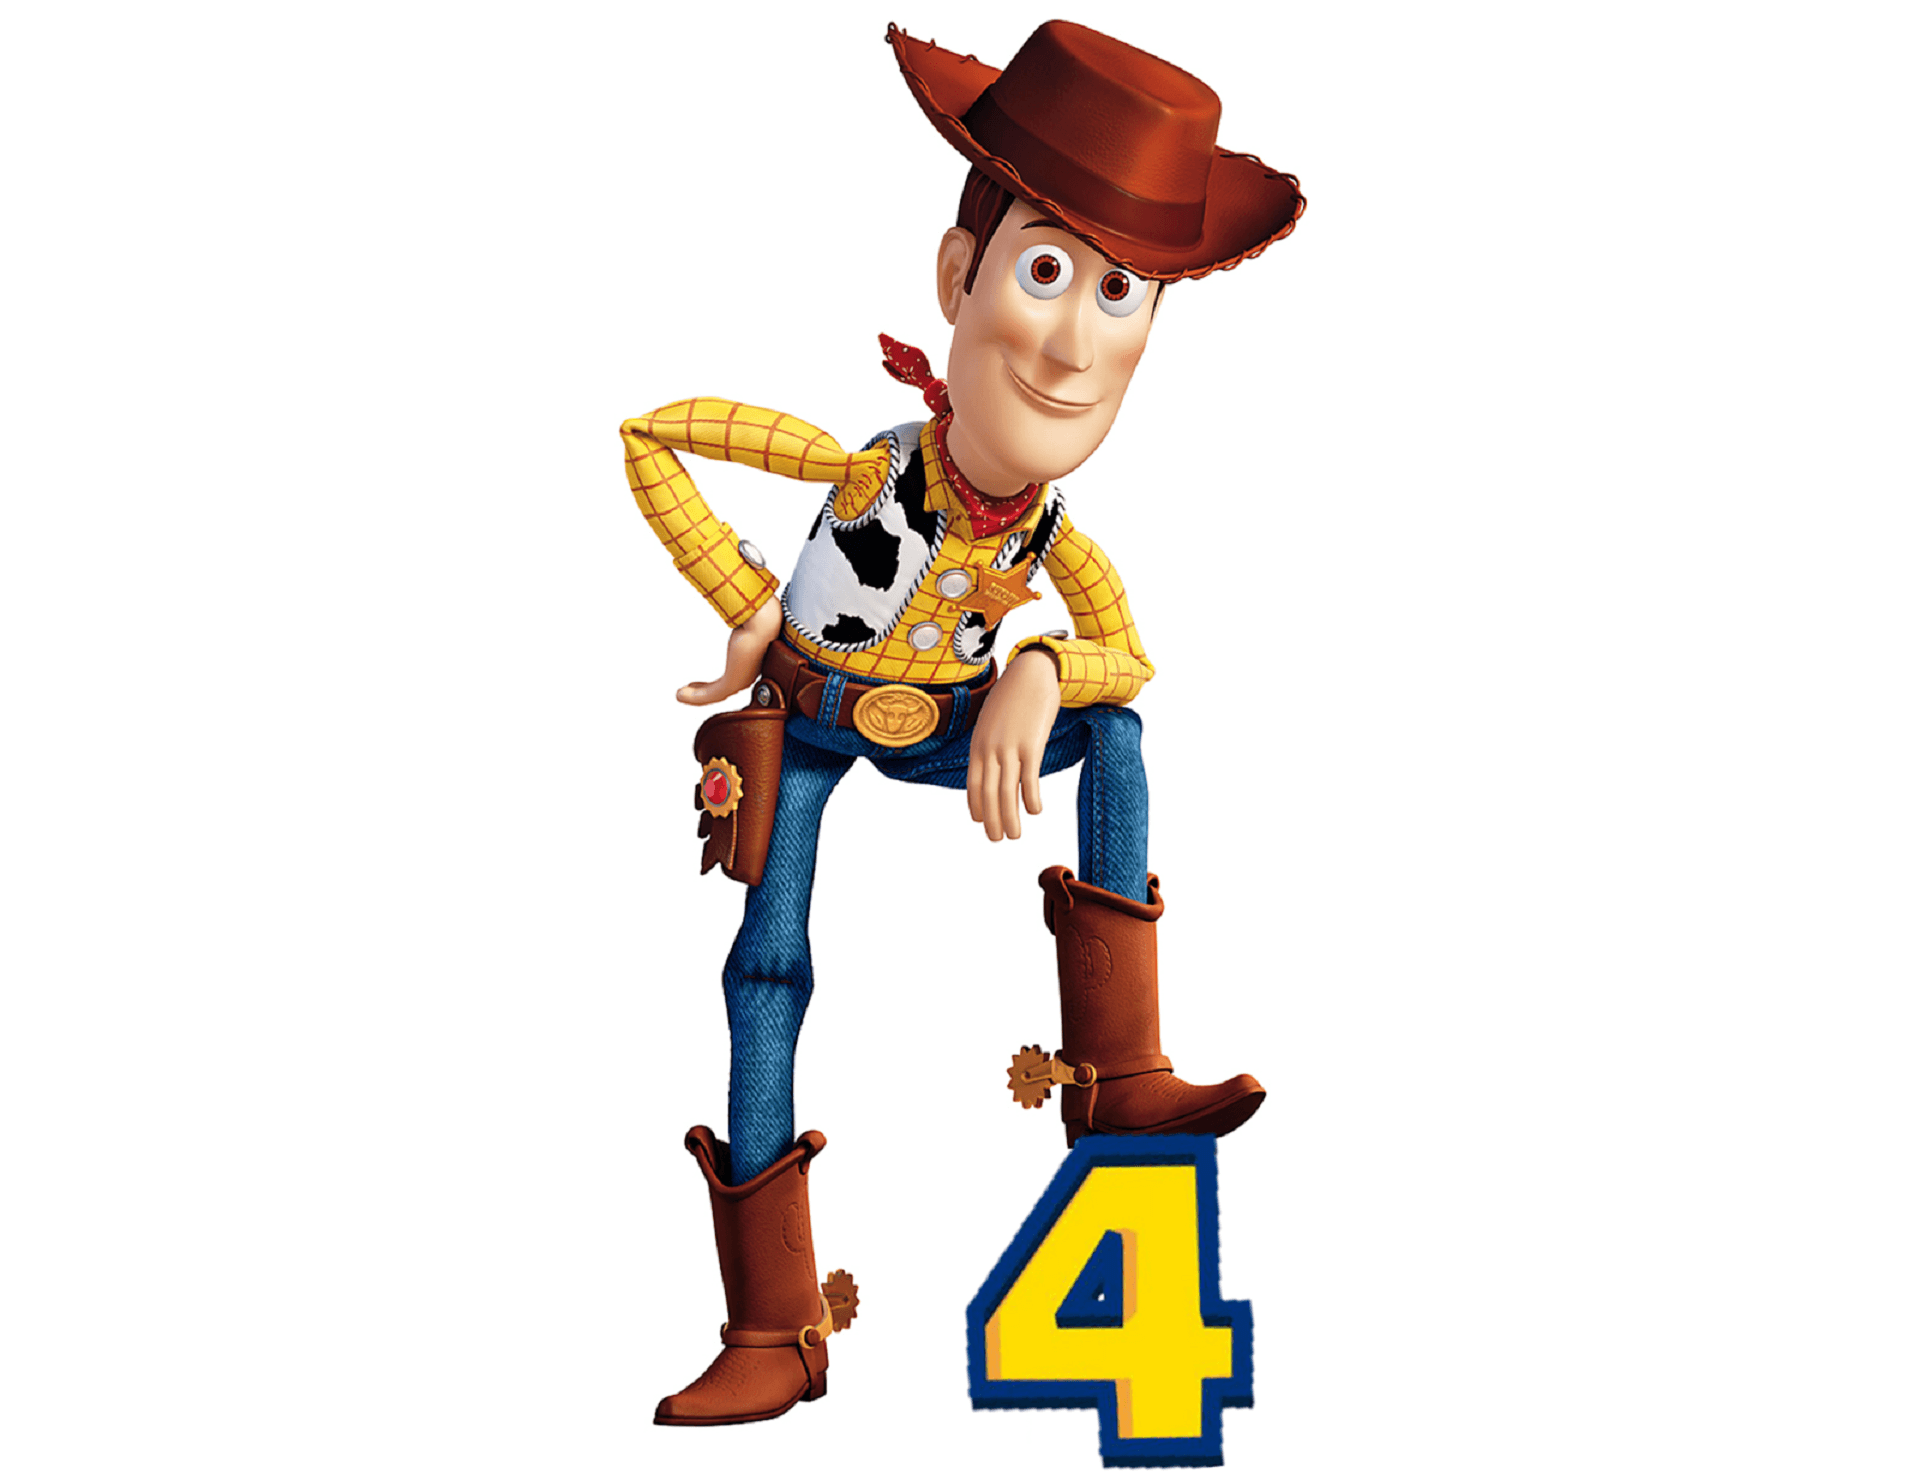 Toy Story 4 Wallpapers Wallpaper Cave